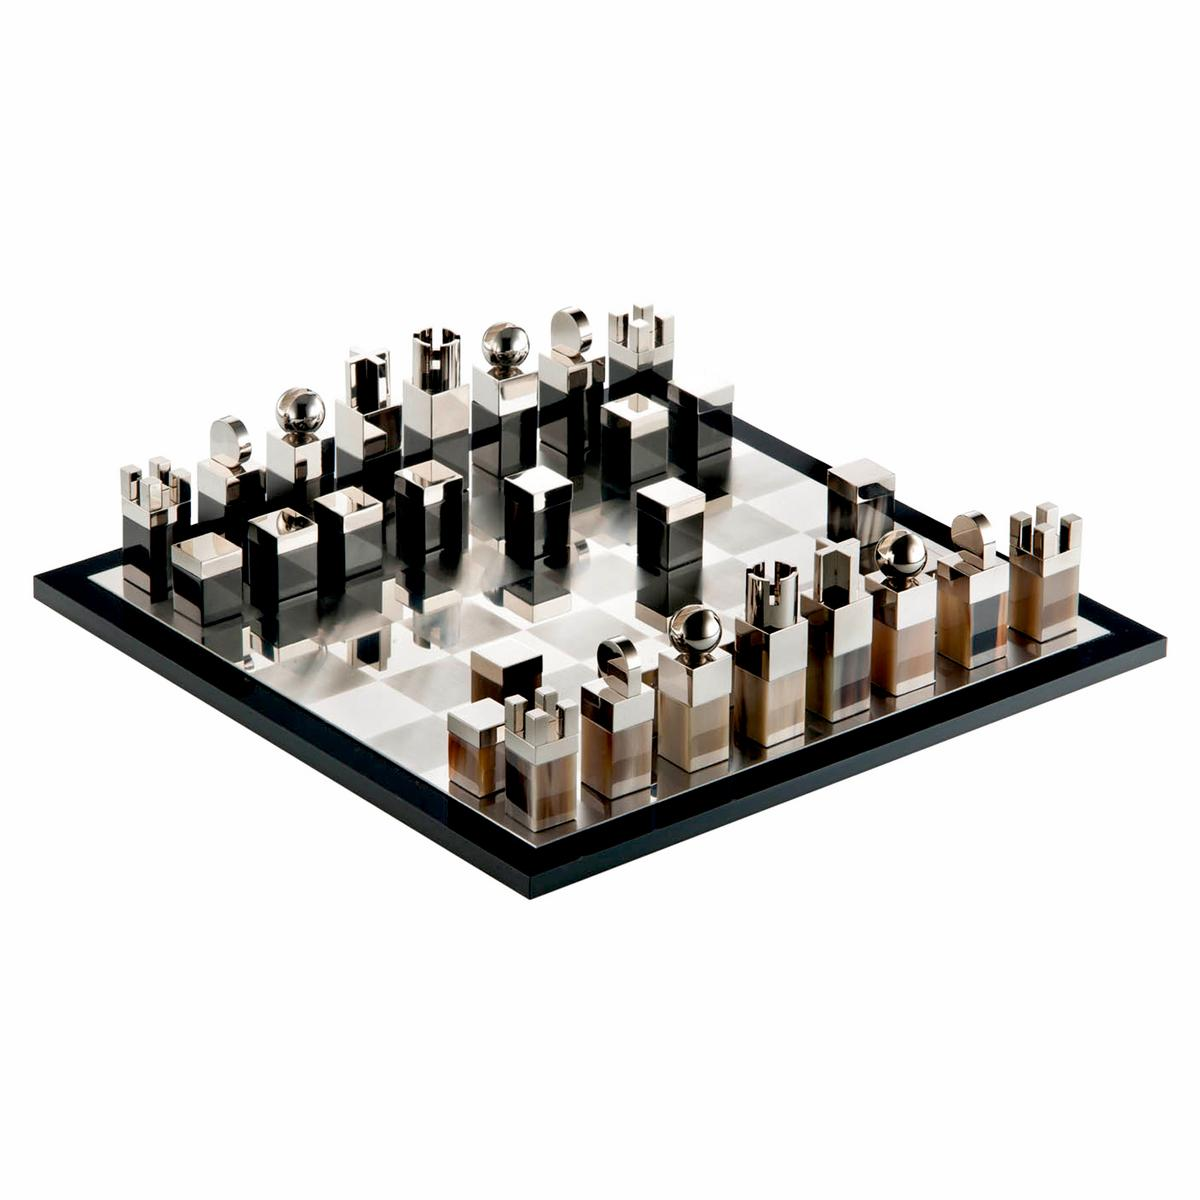 Contemporary Chess Set arcahorn architettura chess set | artedona